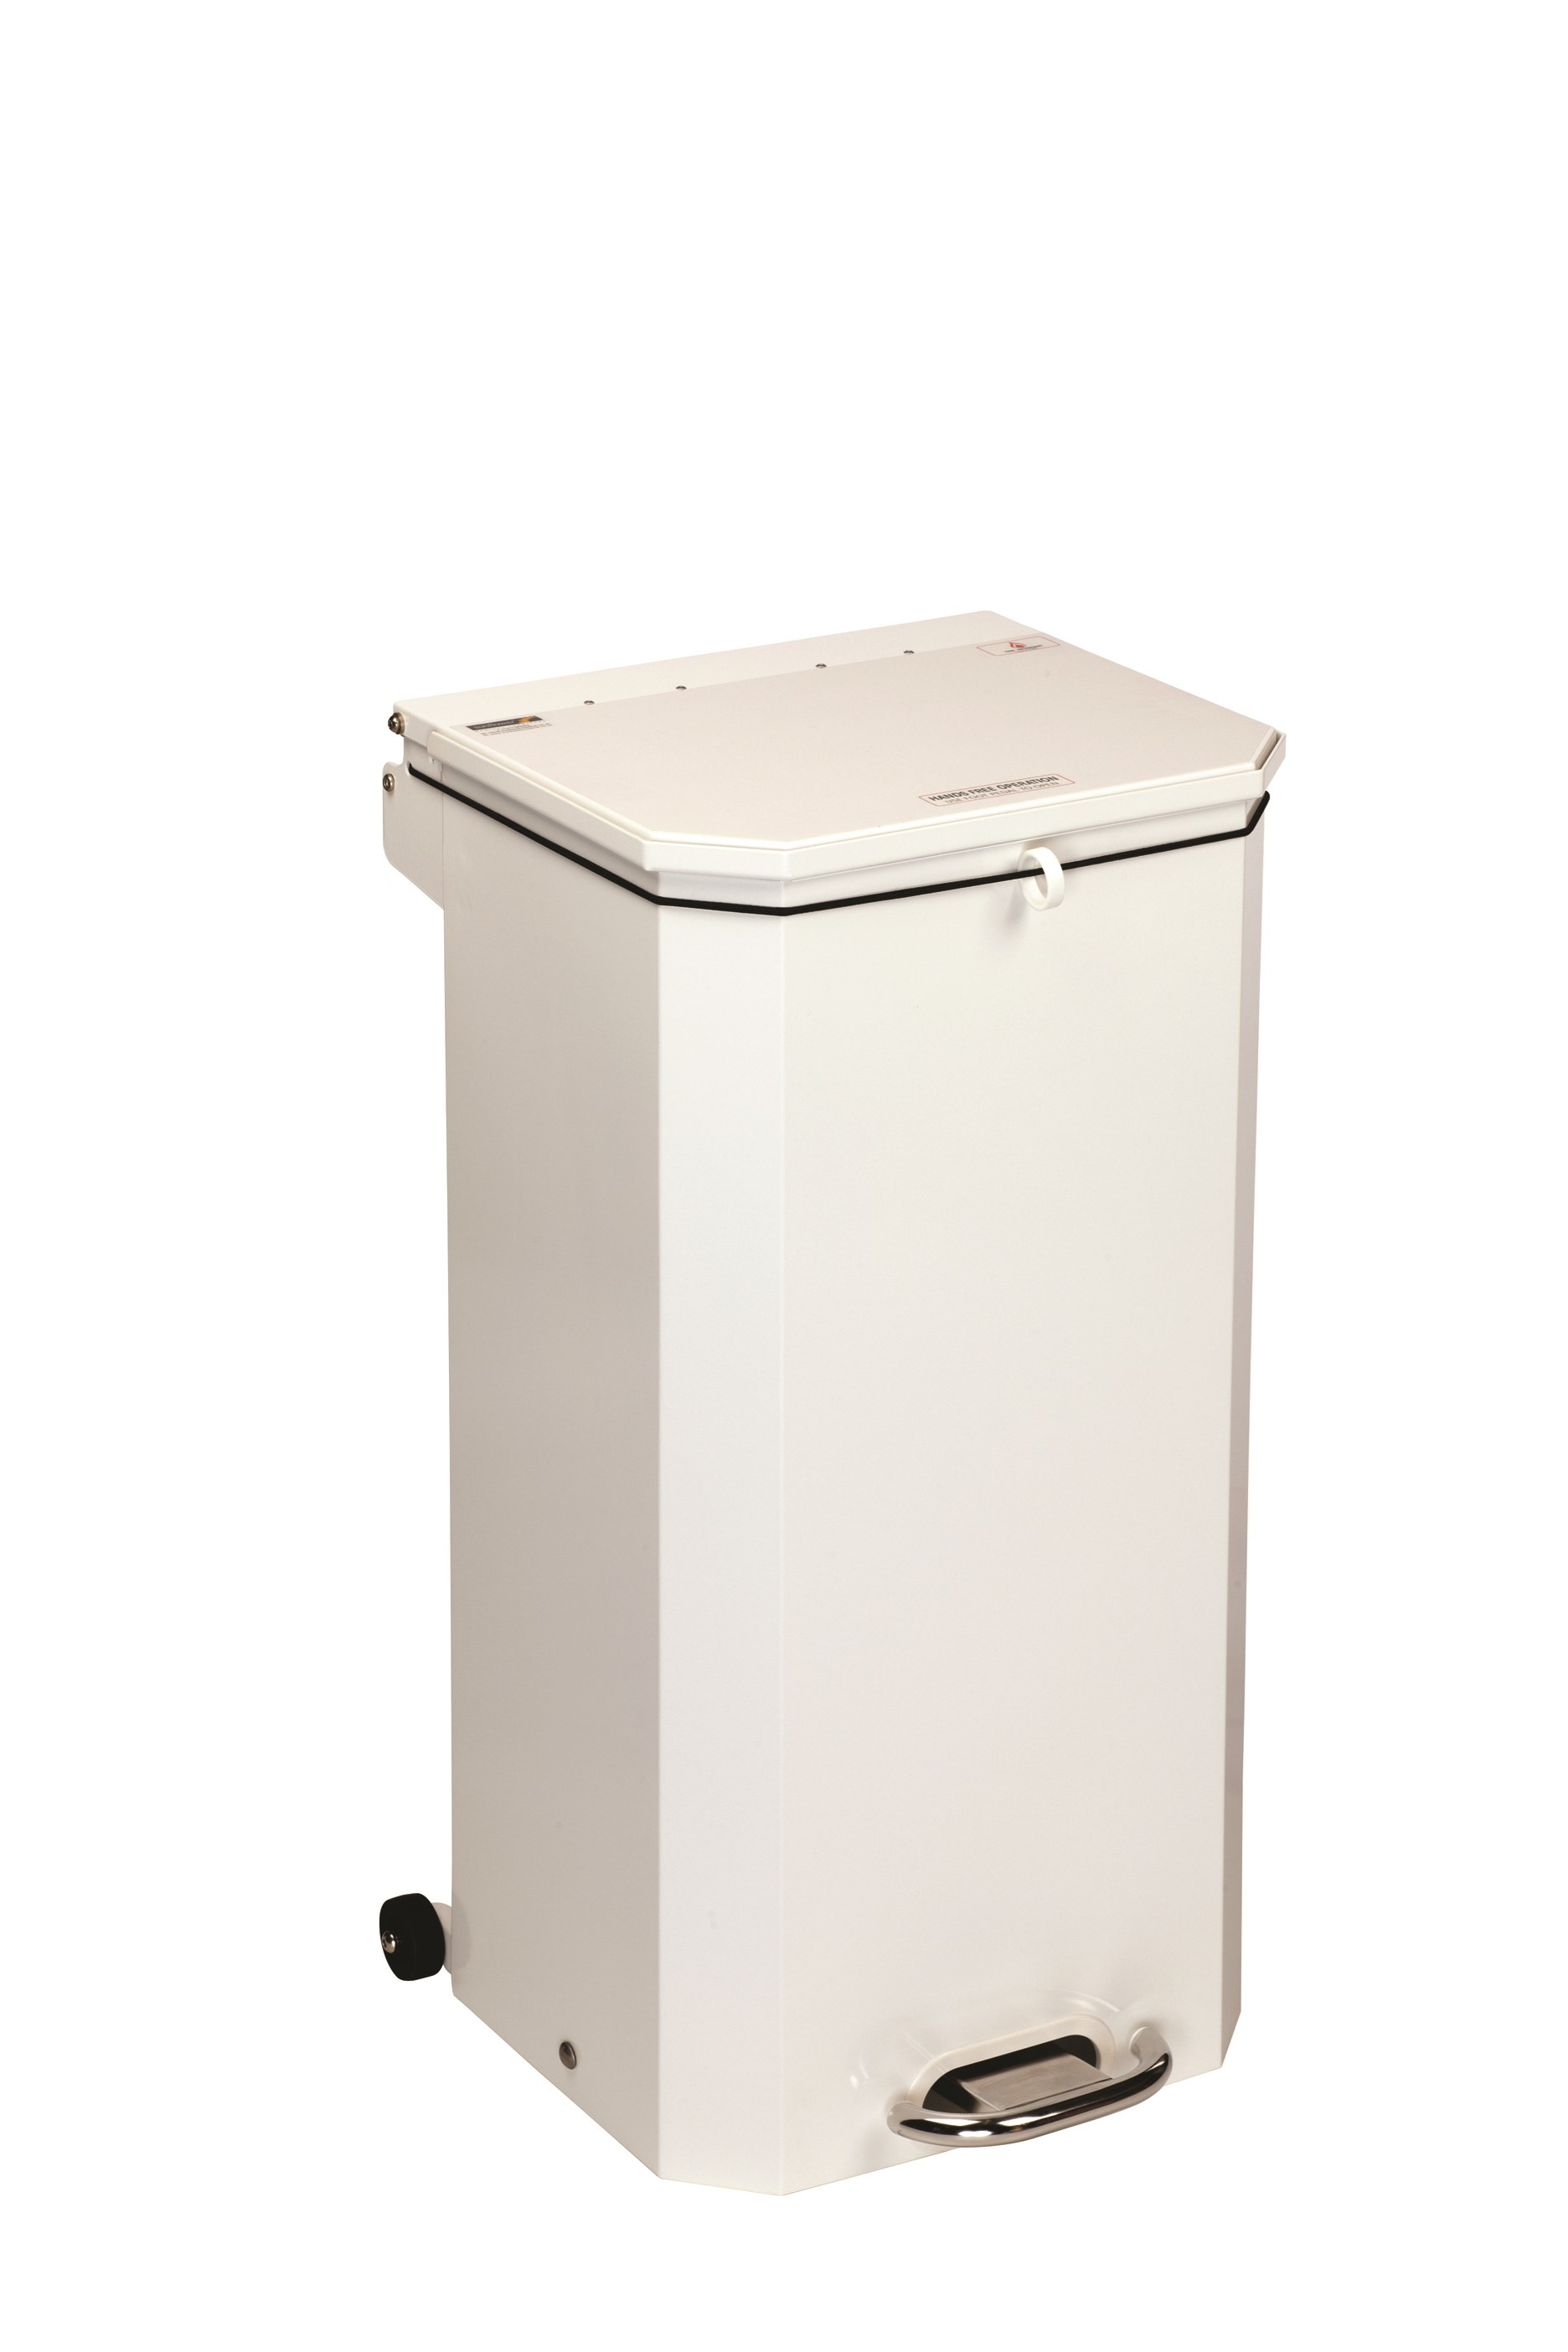 BIN PEDAL 70 LTR WITH WHITE LID FOR GENERAL USE